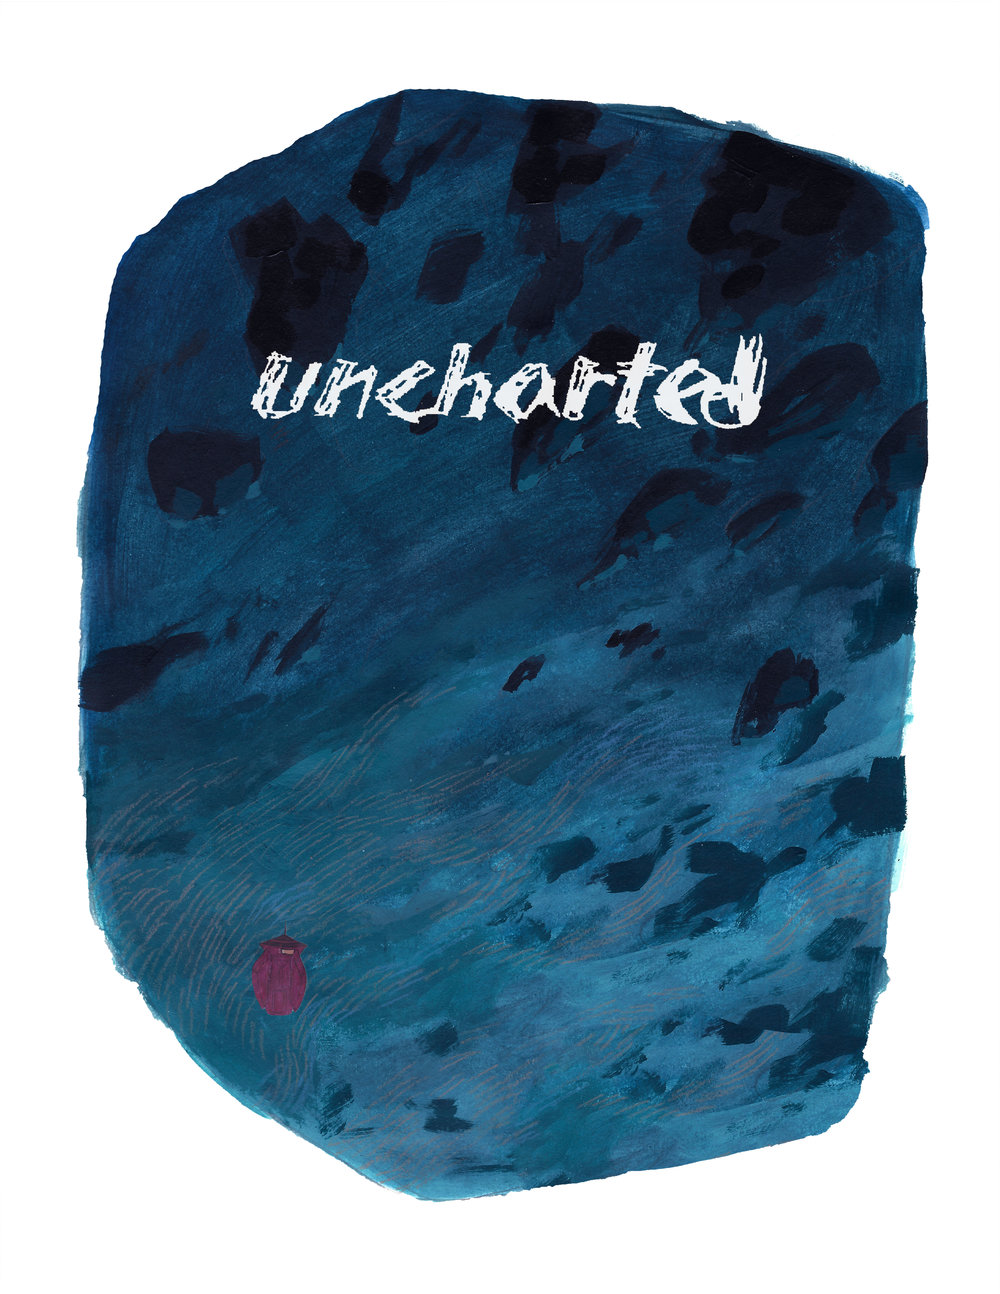 Summer Story Telling: The Final Chapter  - Uncharted - Illustrated by Kerilynn Wilson - Written by Savannah Grace